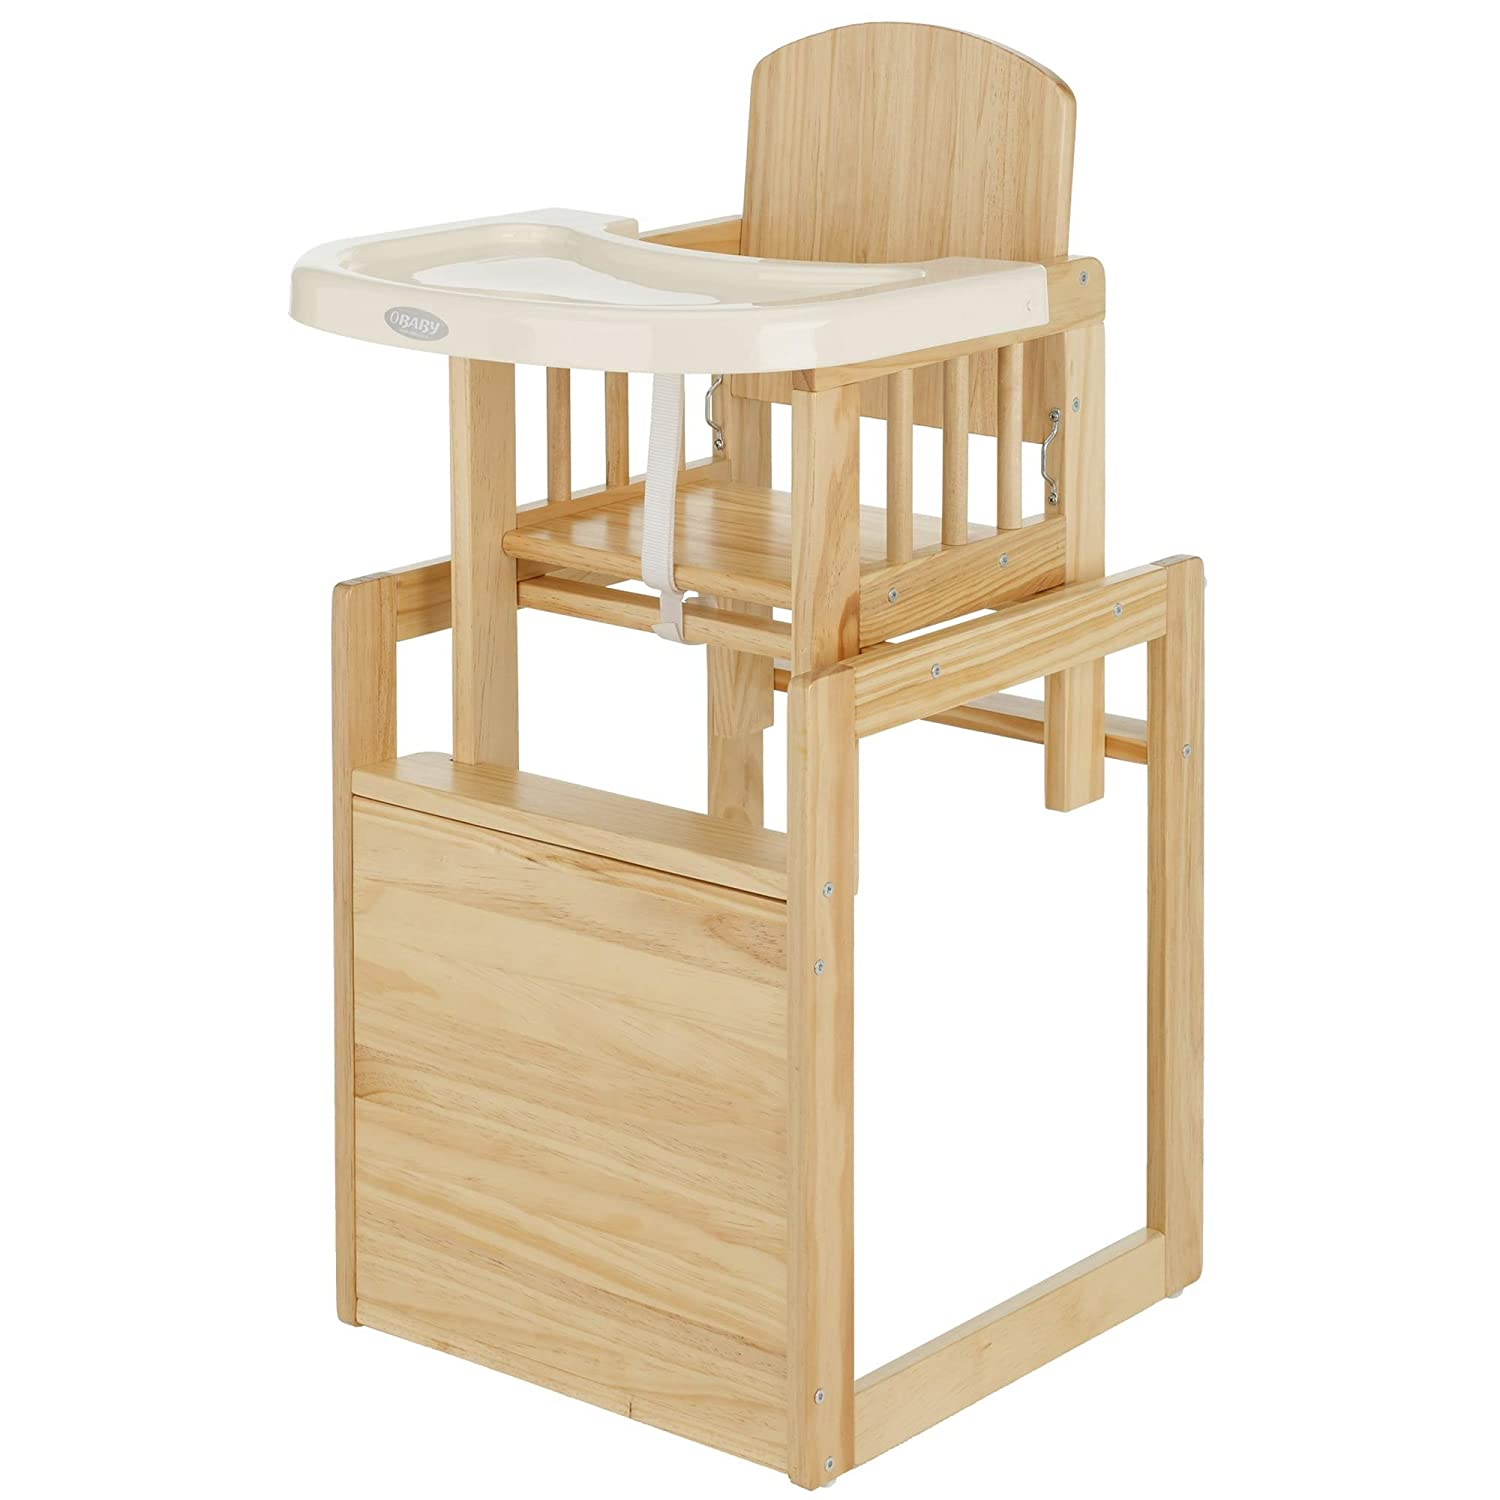 highchairs soho mocka highchair high chair wooden chairs